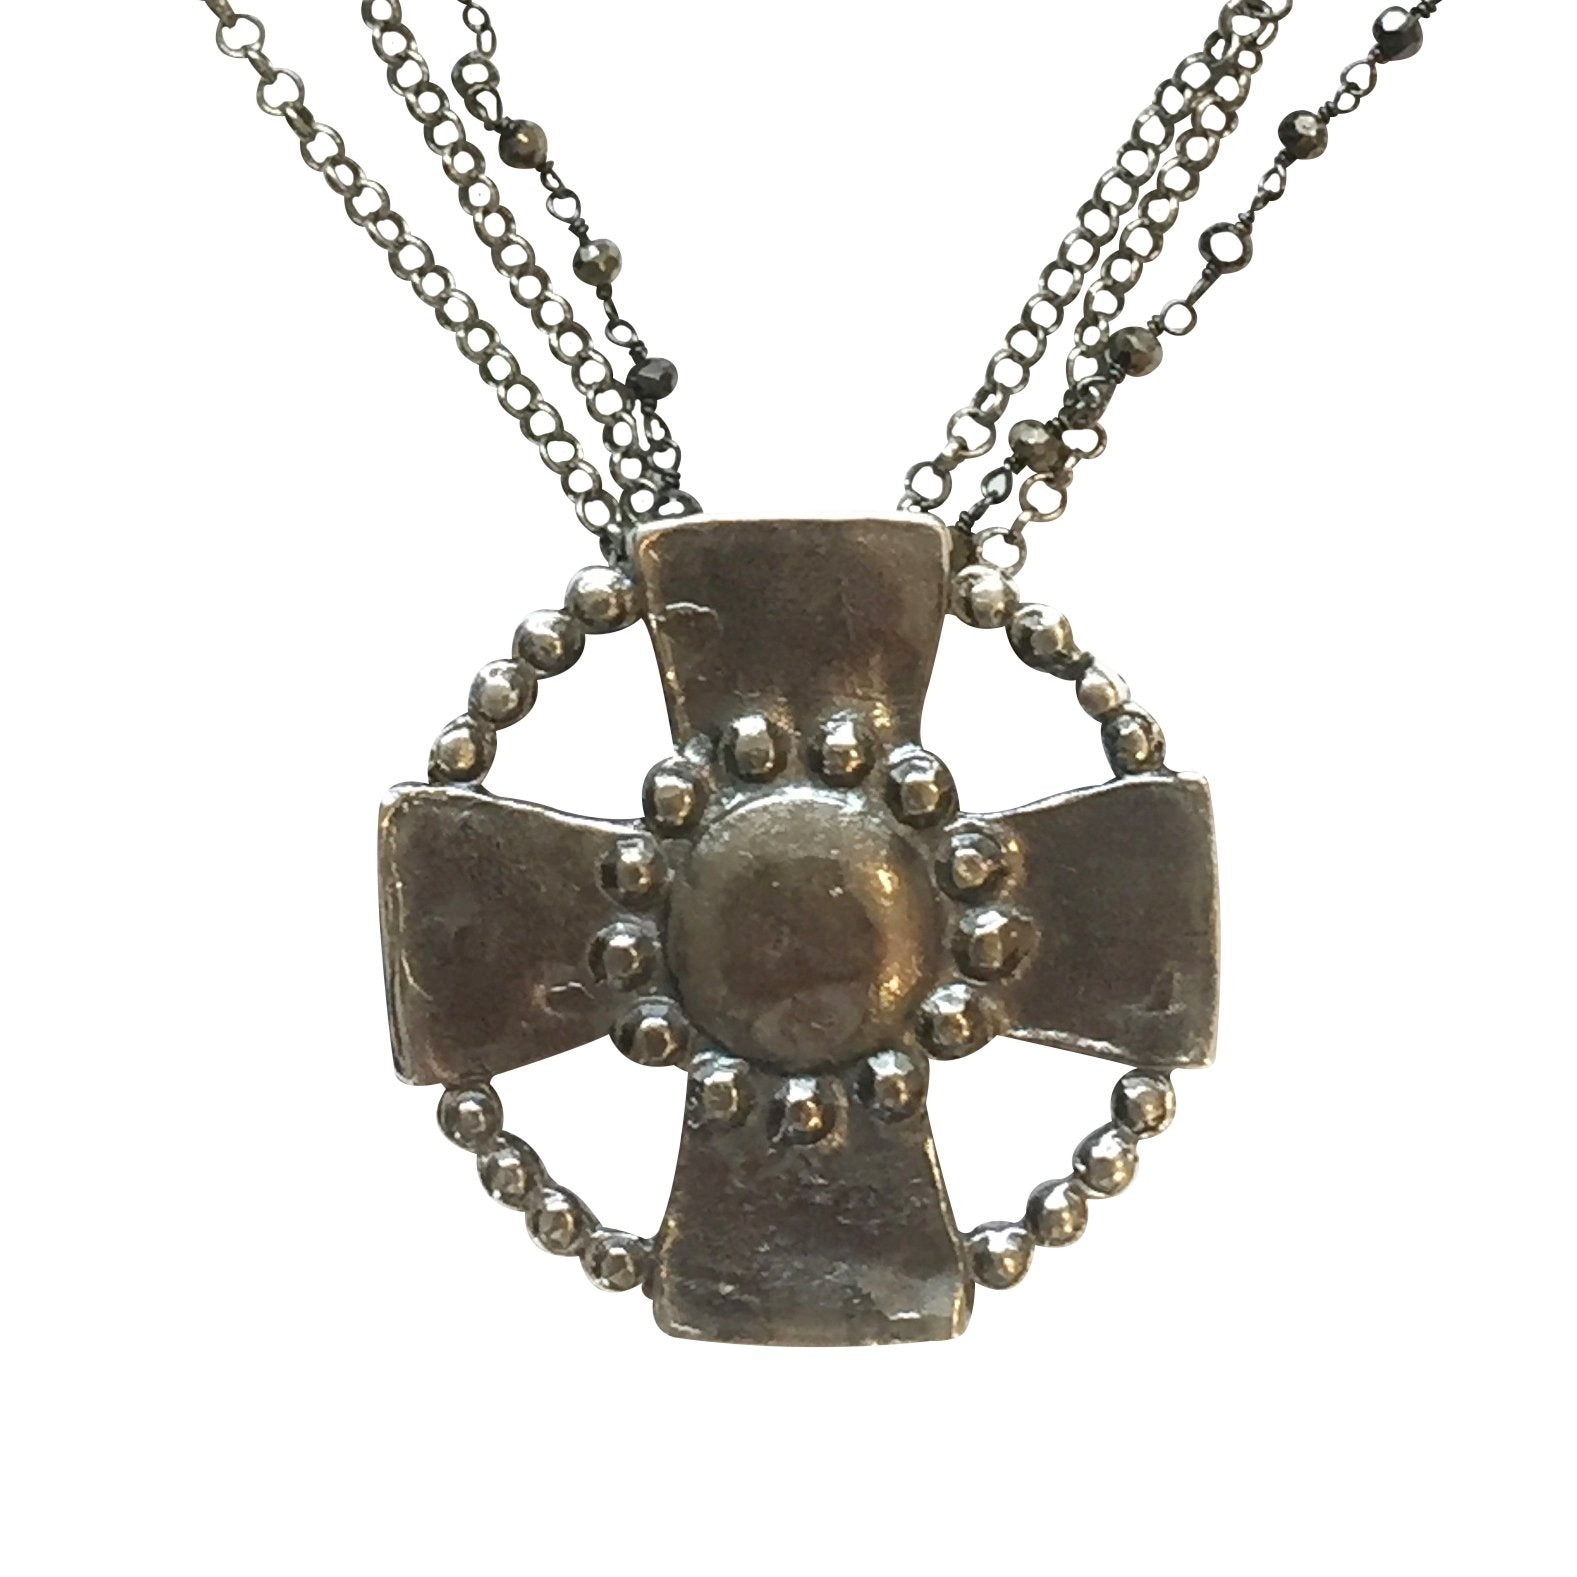 Encircled Cross - [redd accessories], [handcrafted jewelery], [artisan jewelry], [sterling silver], [hipster], [luxary], [high end], [one of a kind],